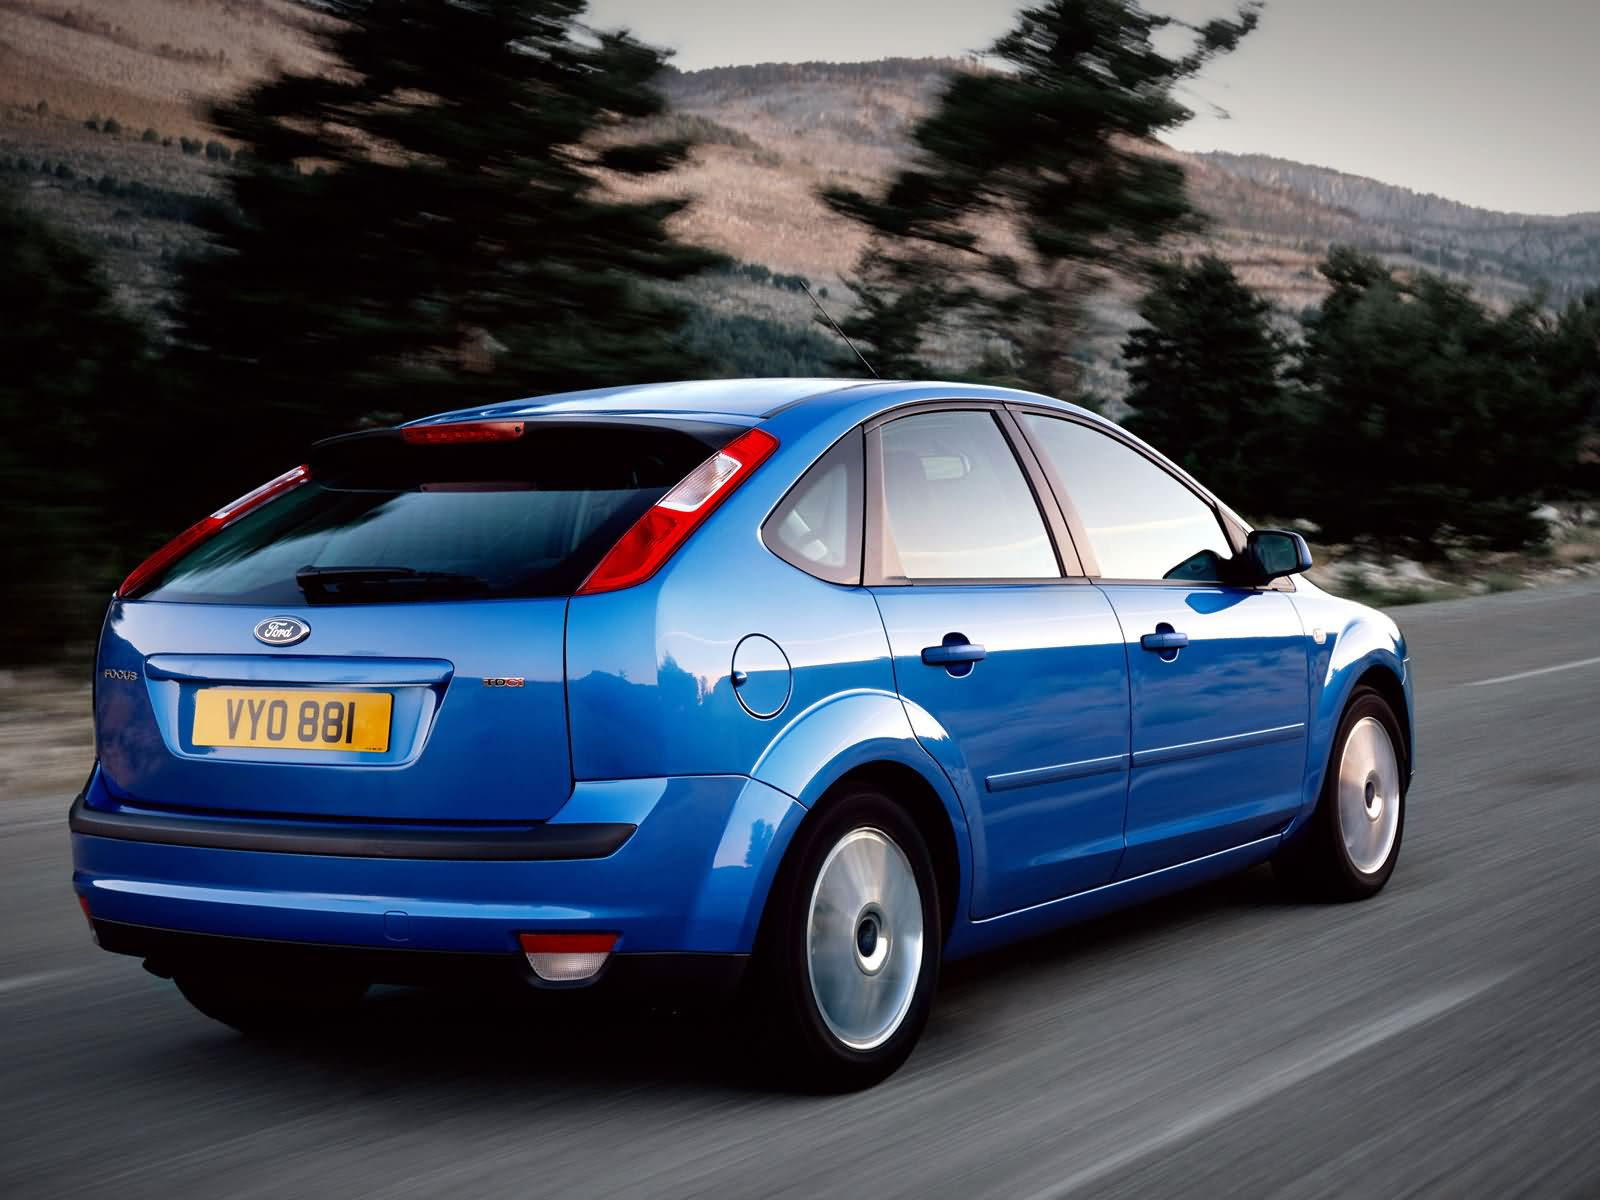 Ford Focus 2 photo 11624